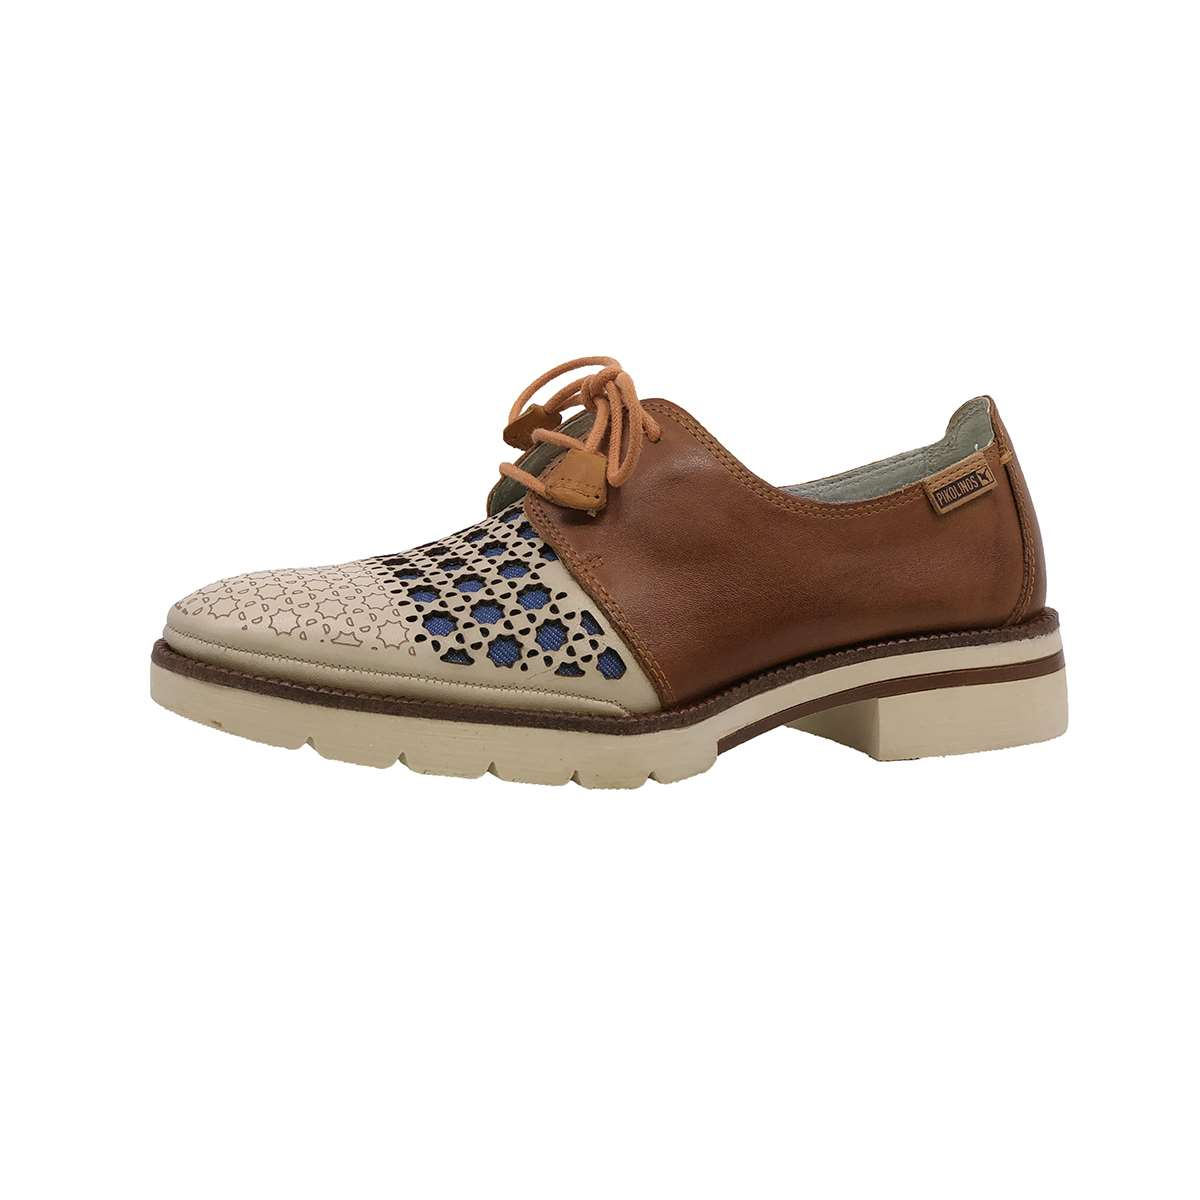 Pikolinos Women Sitges Oxford Shoes Economical, stylish, and eye-catching shoes